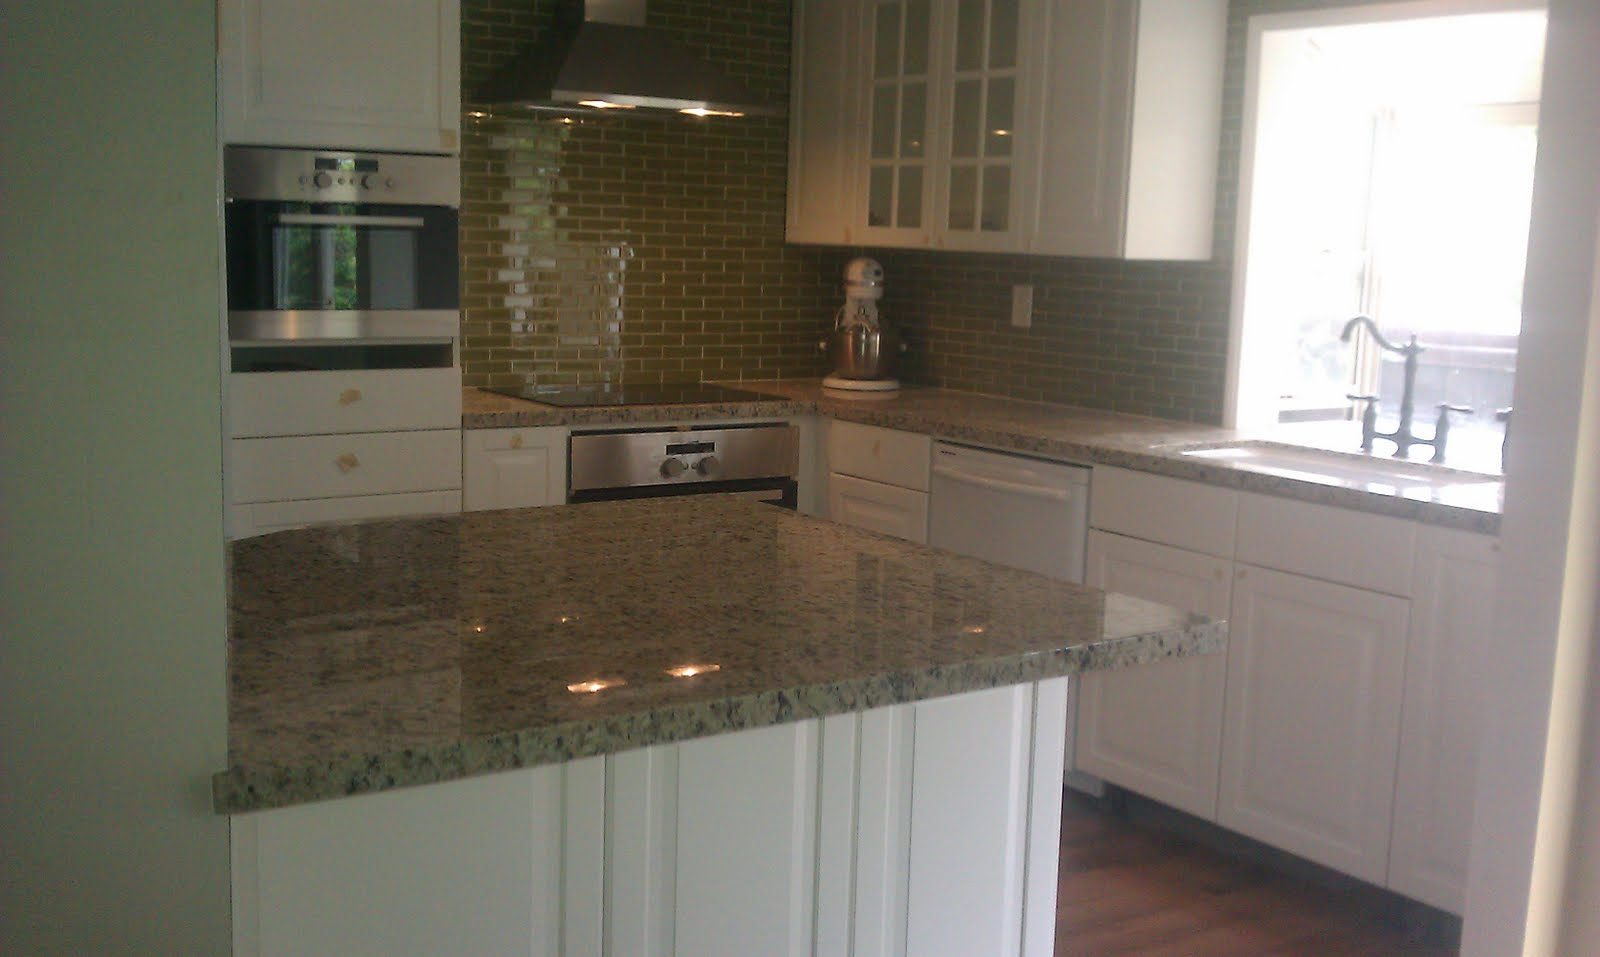 Granite Countertops Home Depot Or Lowes : ... zodiak cambria home depot ikea lowe s countertop granite countertop